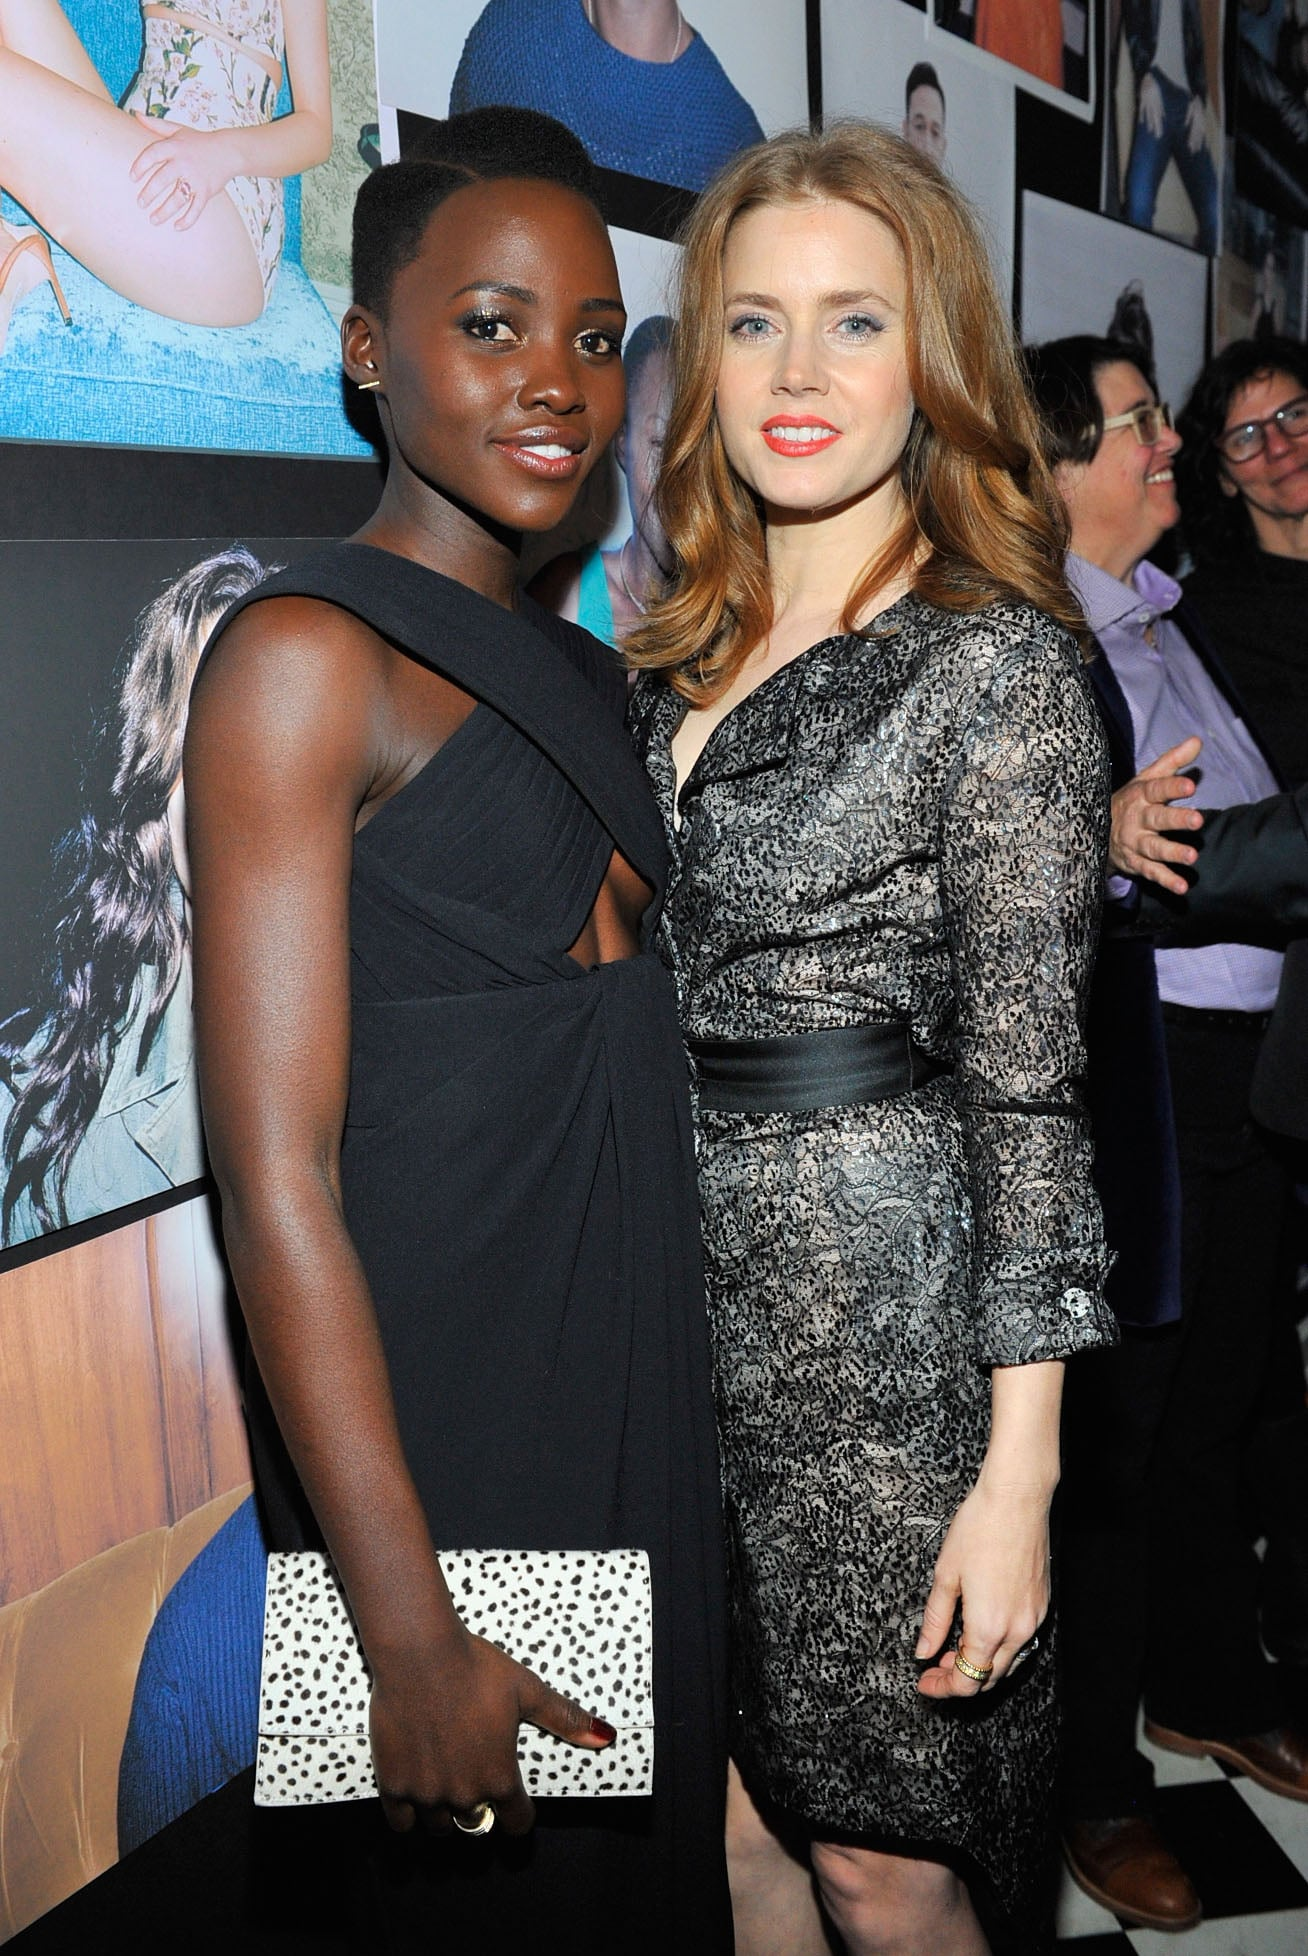 Amy Adams and Lupita Nyong'o were the stars of W magazine's preparty on Thursday.